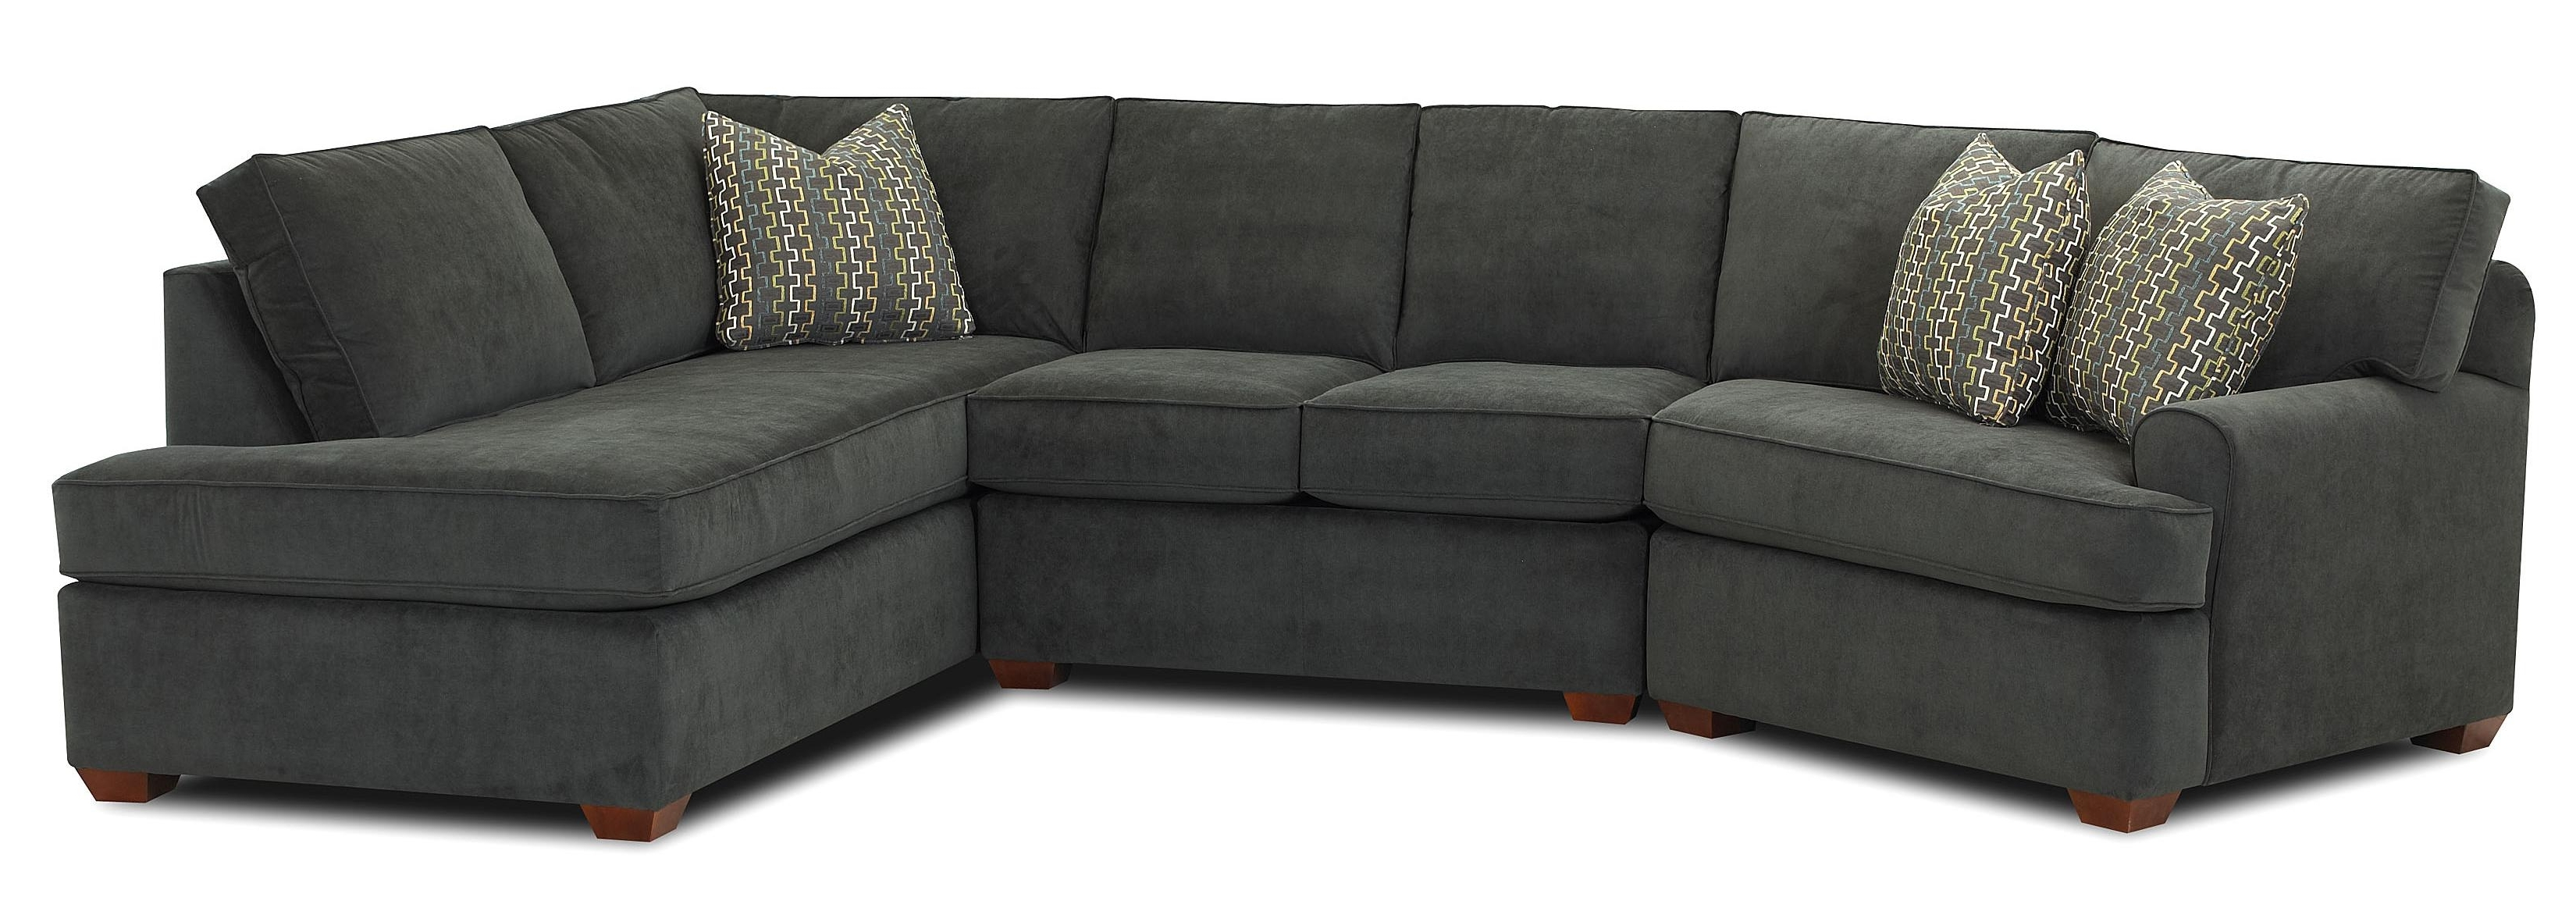 Widely Used Sectional Sofa Design: Elegant Sectional Sofas Chaise Leather Intended For Sectionals With Chaise (View 10 of 15)